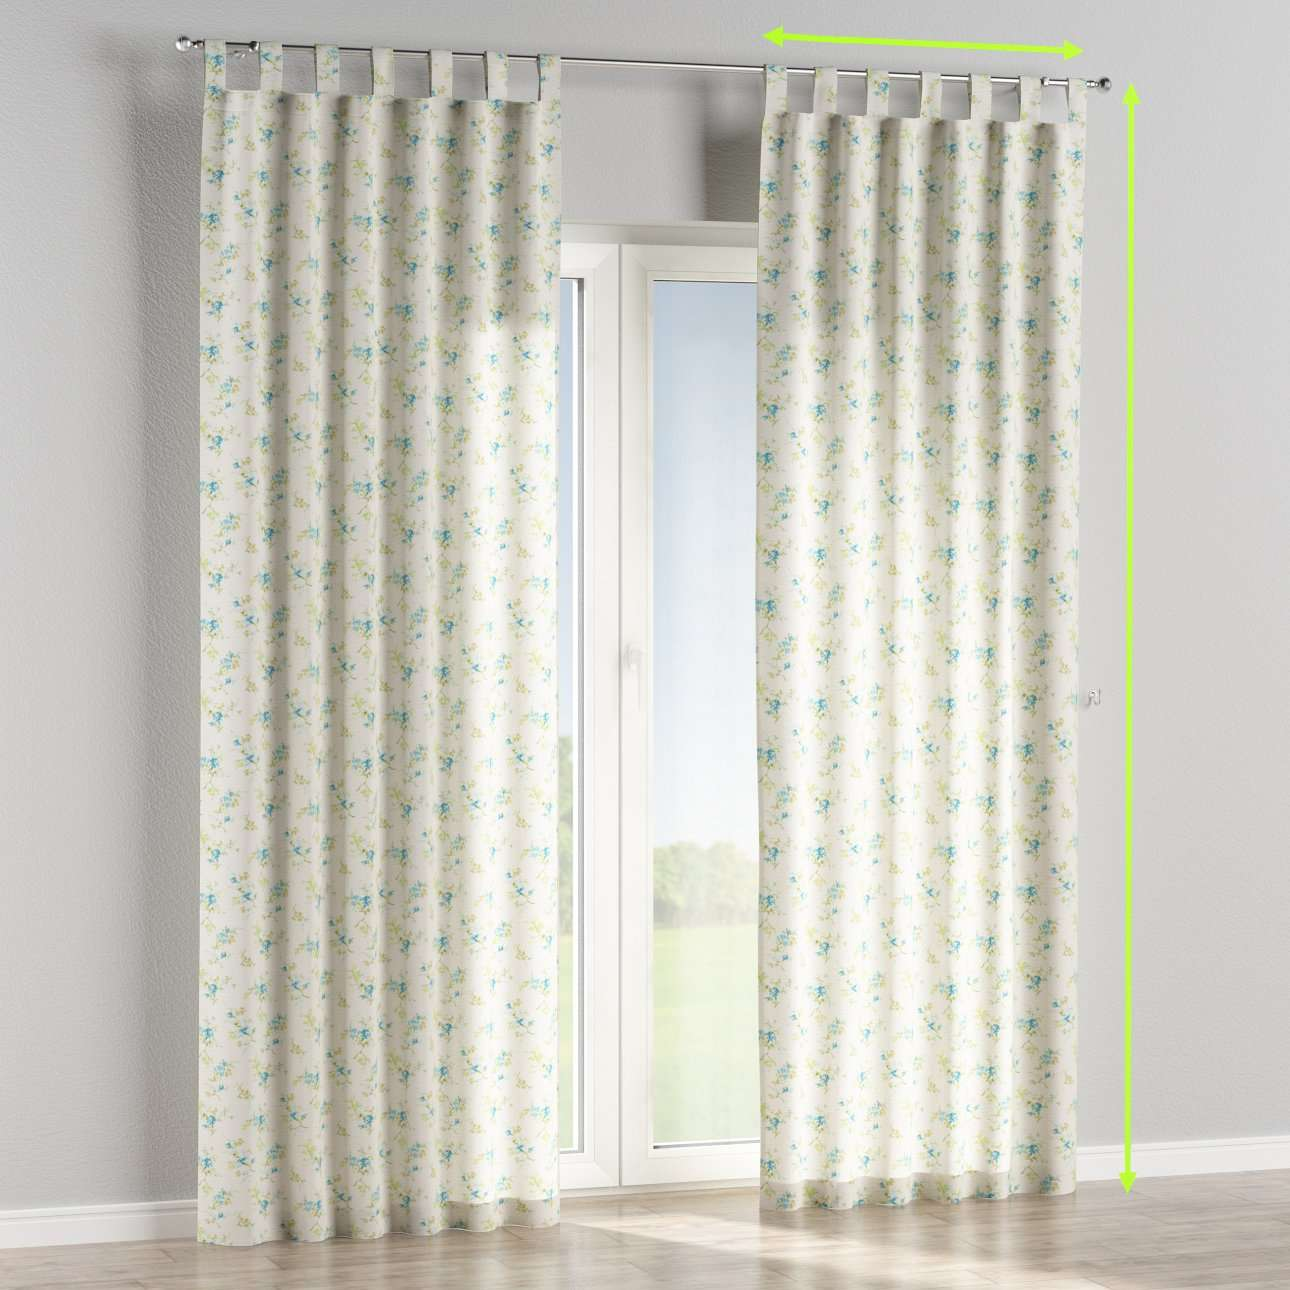 Tab top lined curtains in collection Mirella, fabric: 141-16